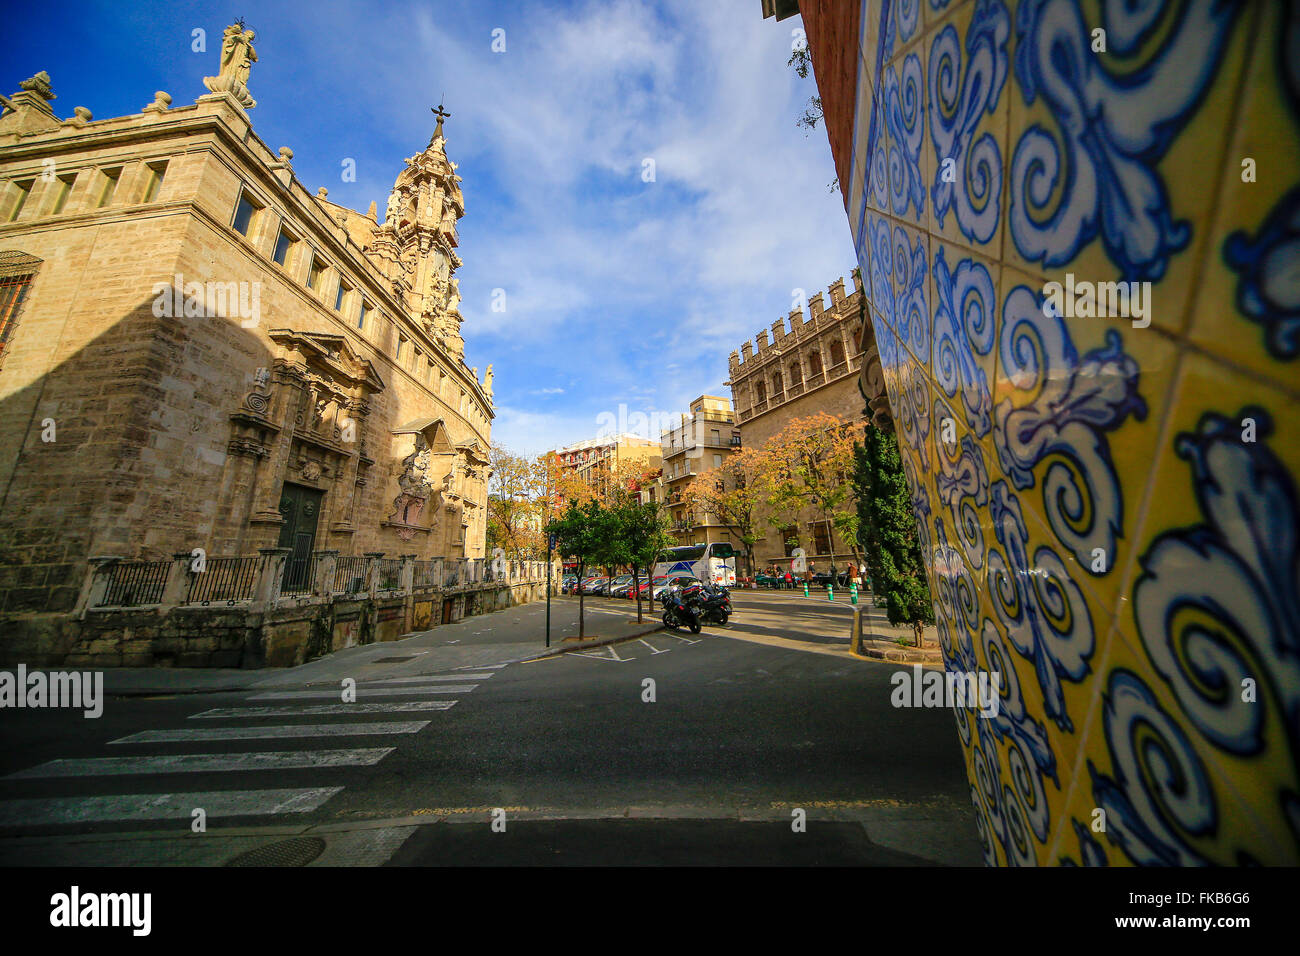 Spanish wall tiles yellow white and blue with church and pedestrian crossing - Stock Image